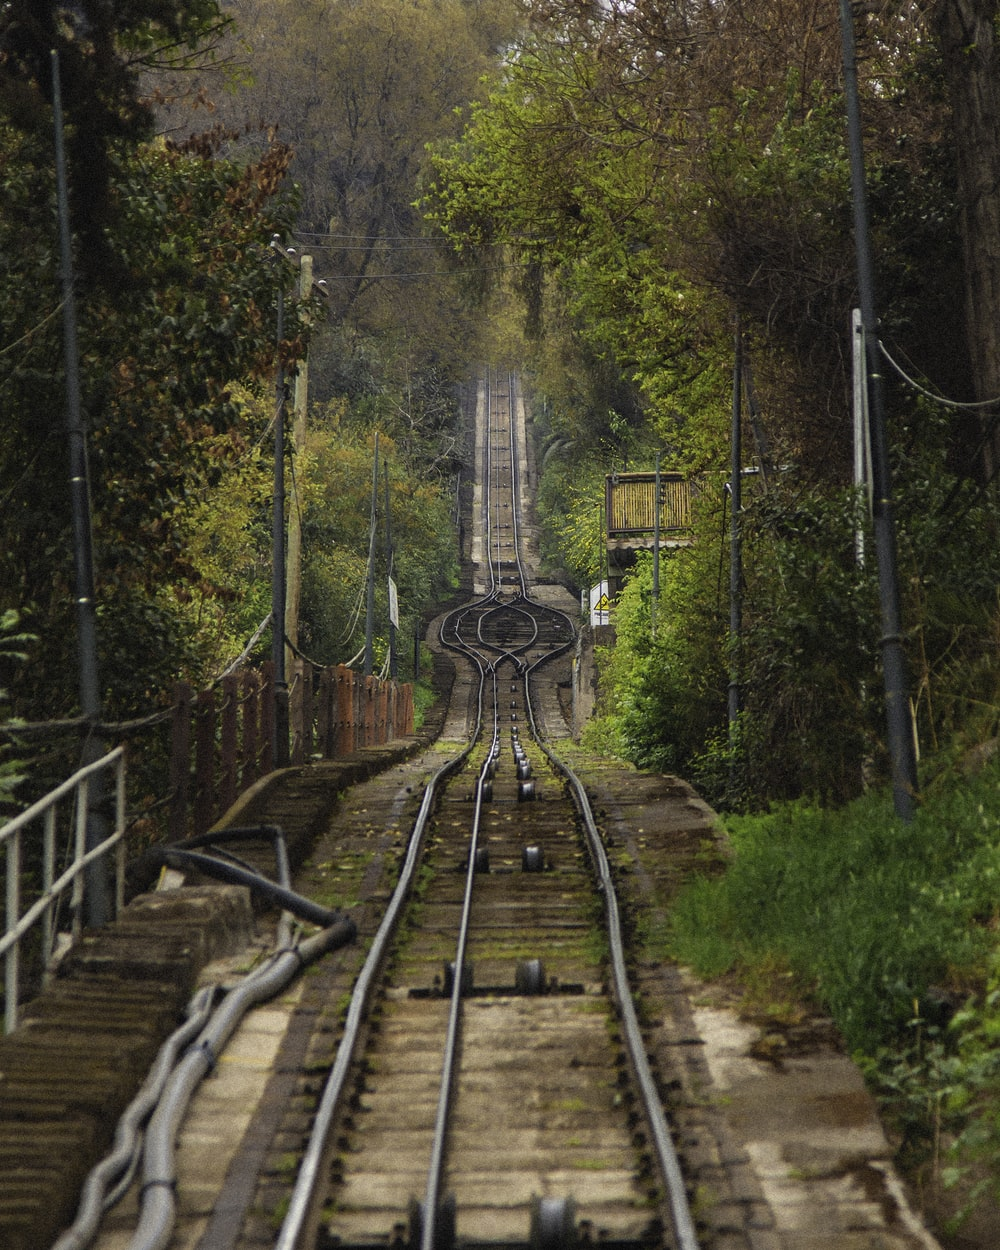 close-up photography of train tracks